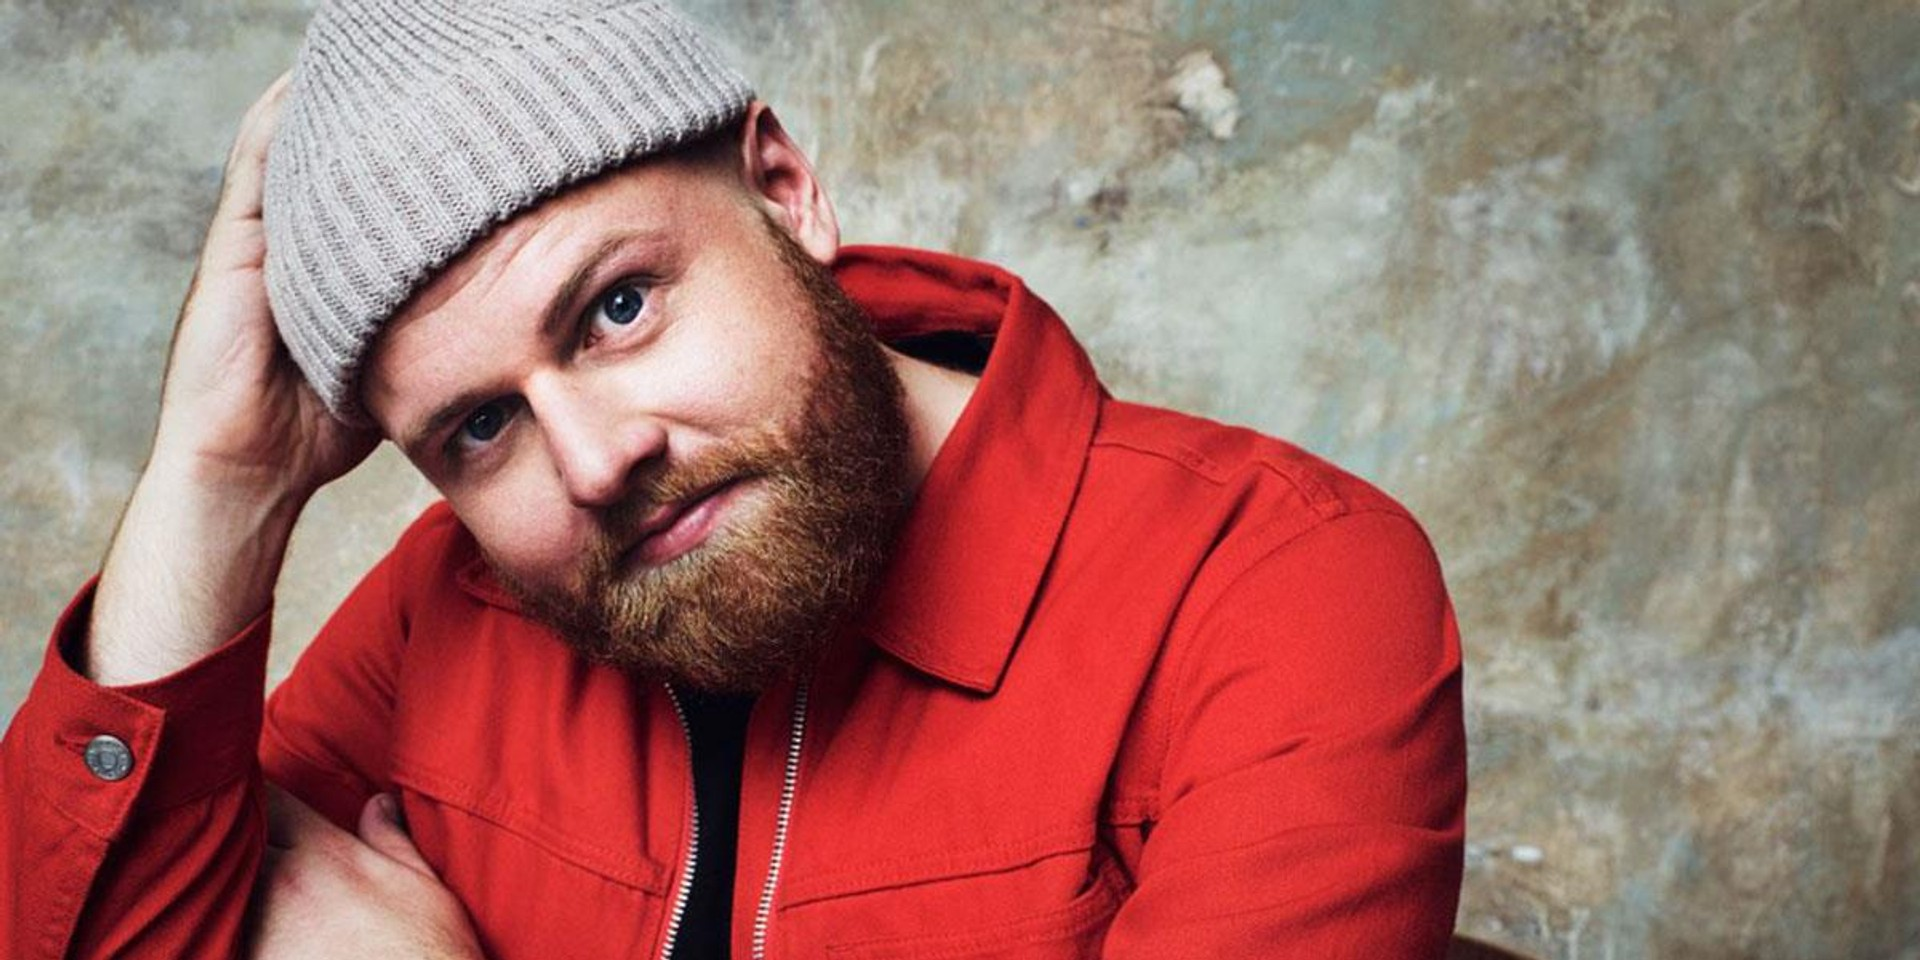 Tom Walker's Asia tour has been cancelled